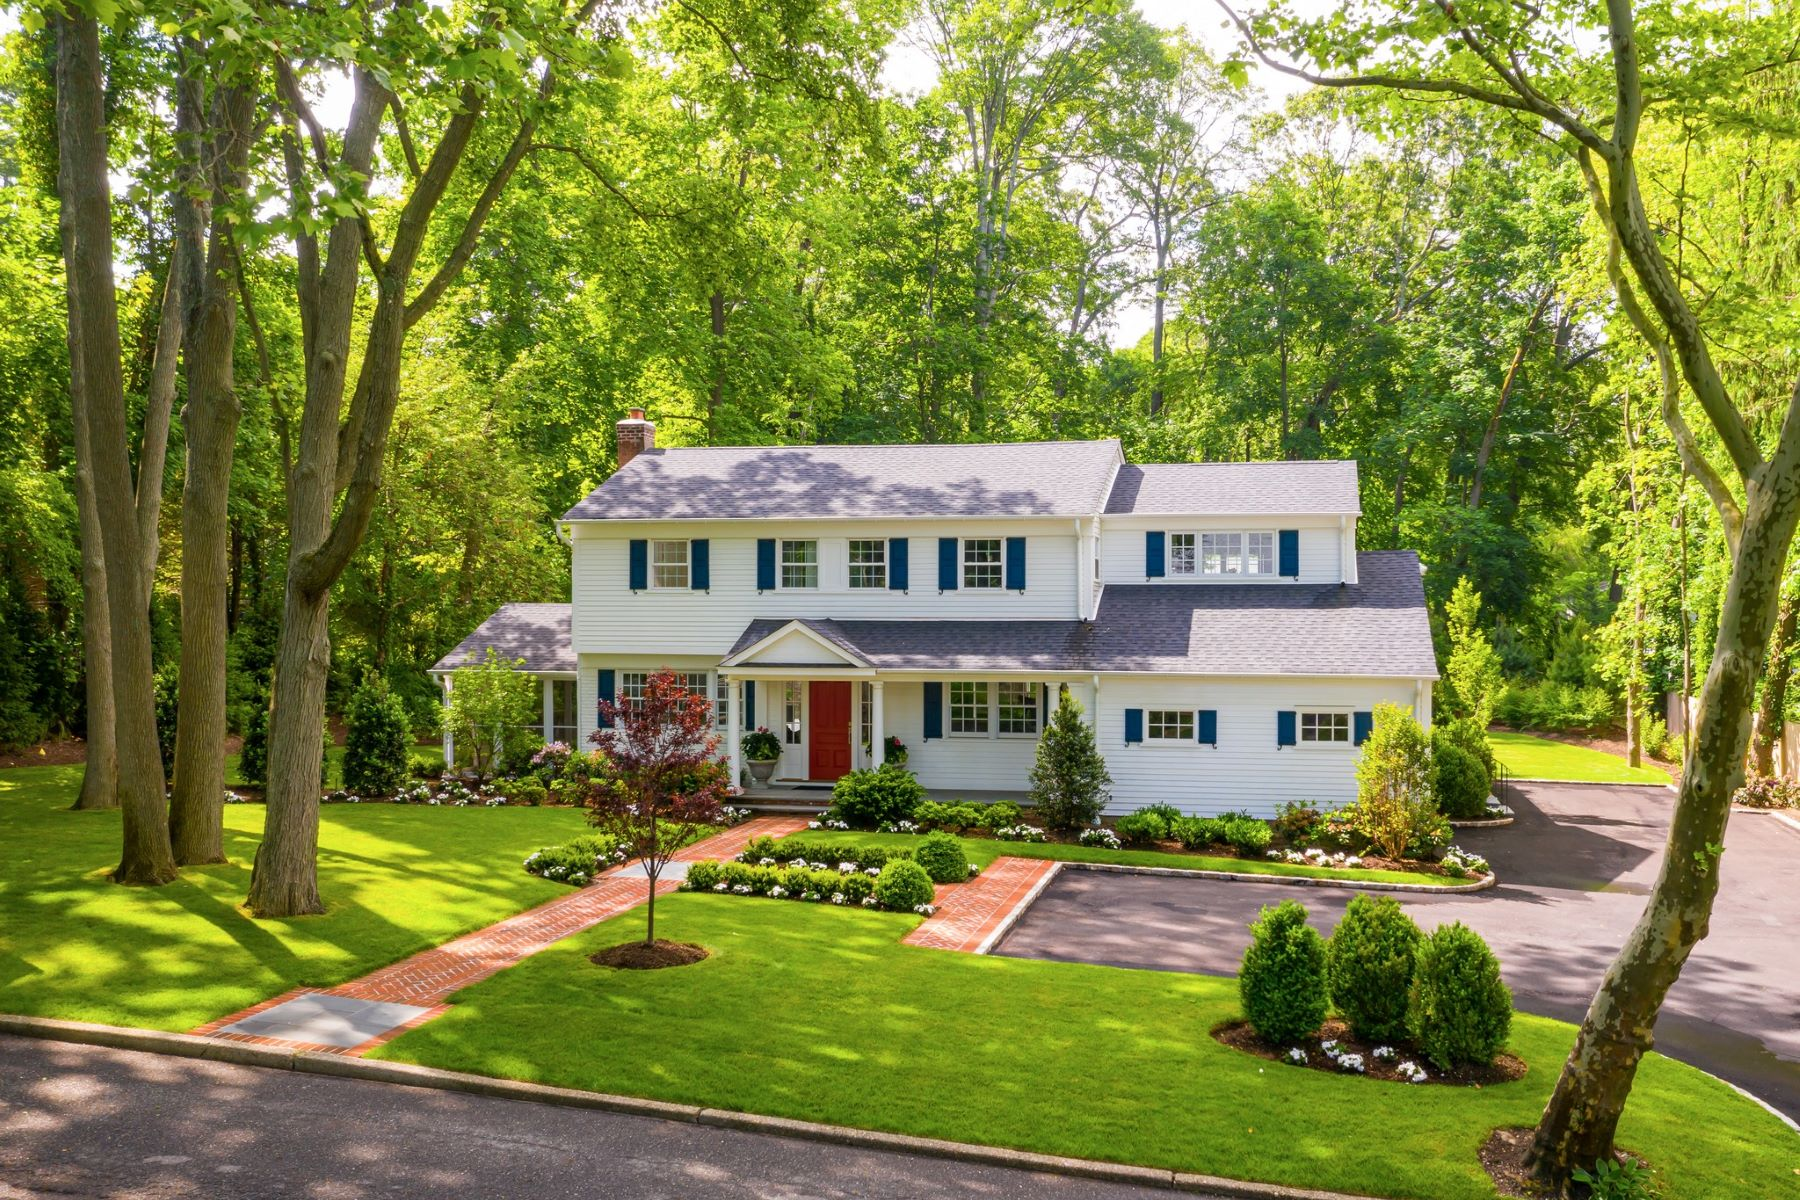 Single Family Homes for Sale at Cold Spring Hrbr 128 Midland St Cold Spring Harbor, New York 11724 United States